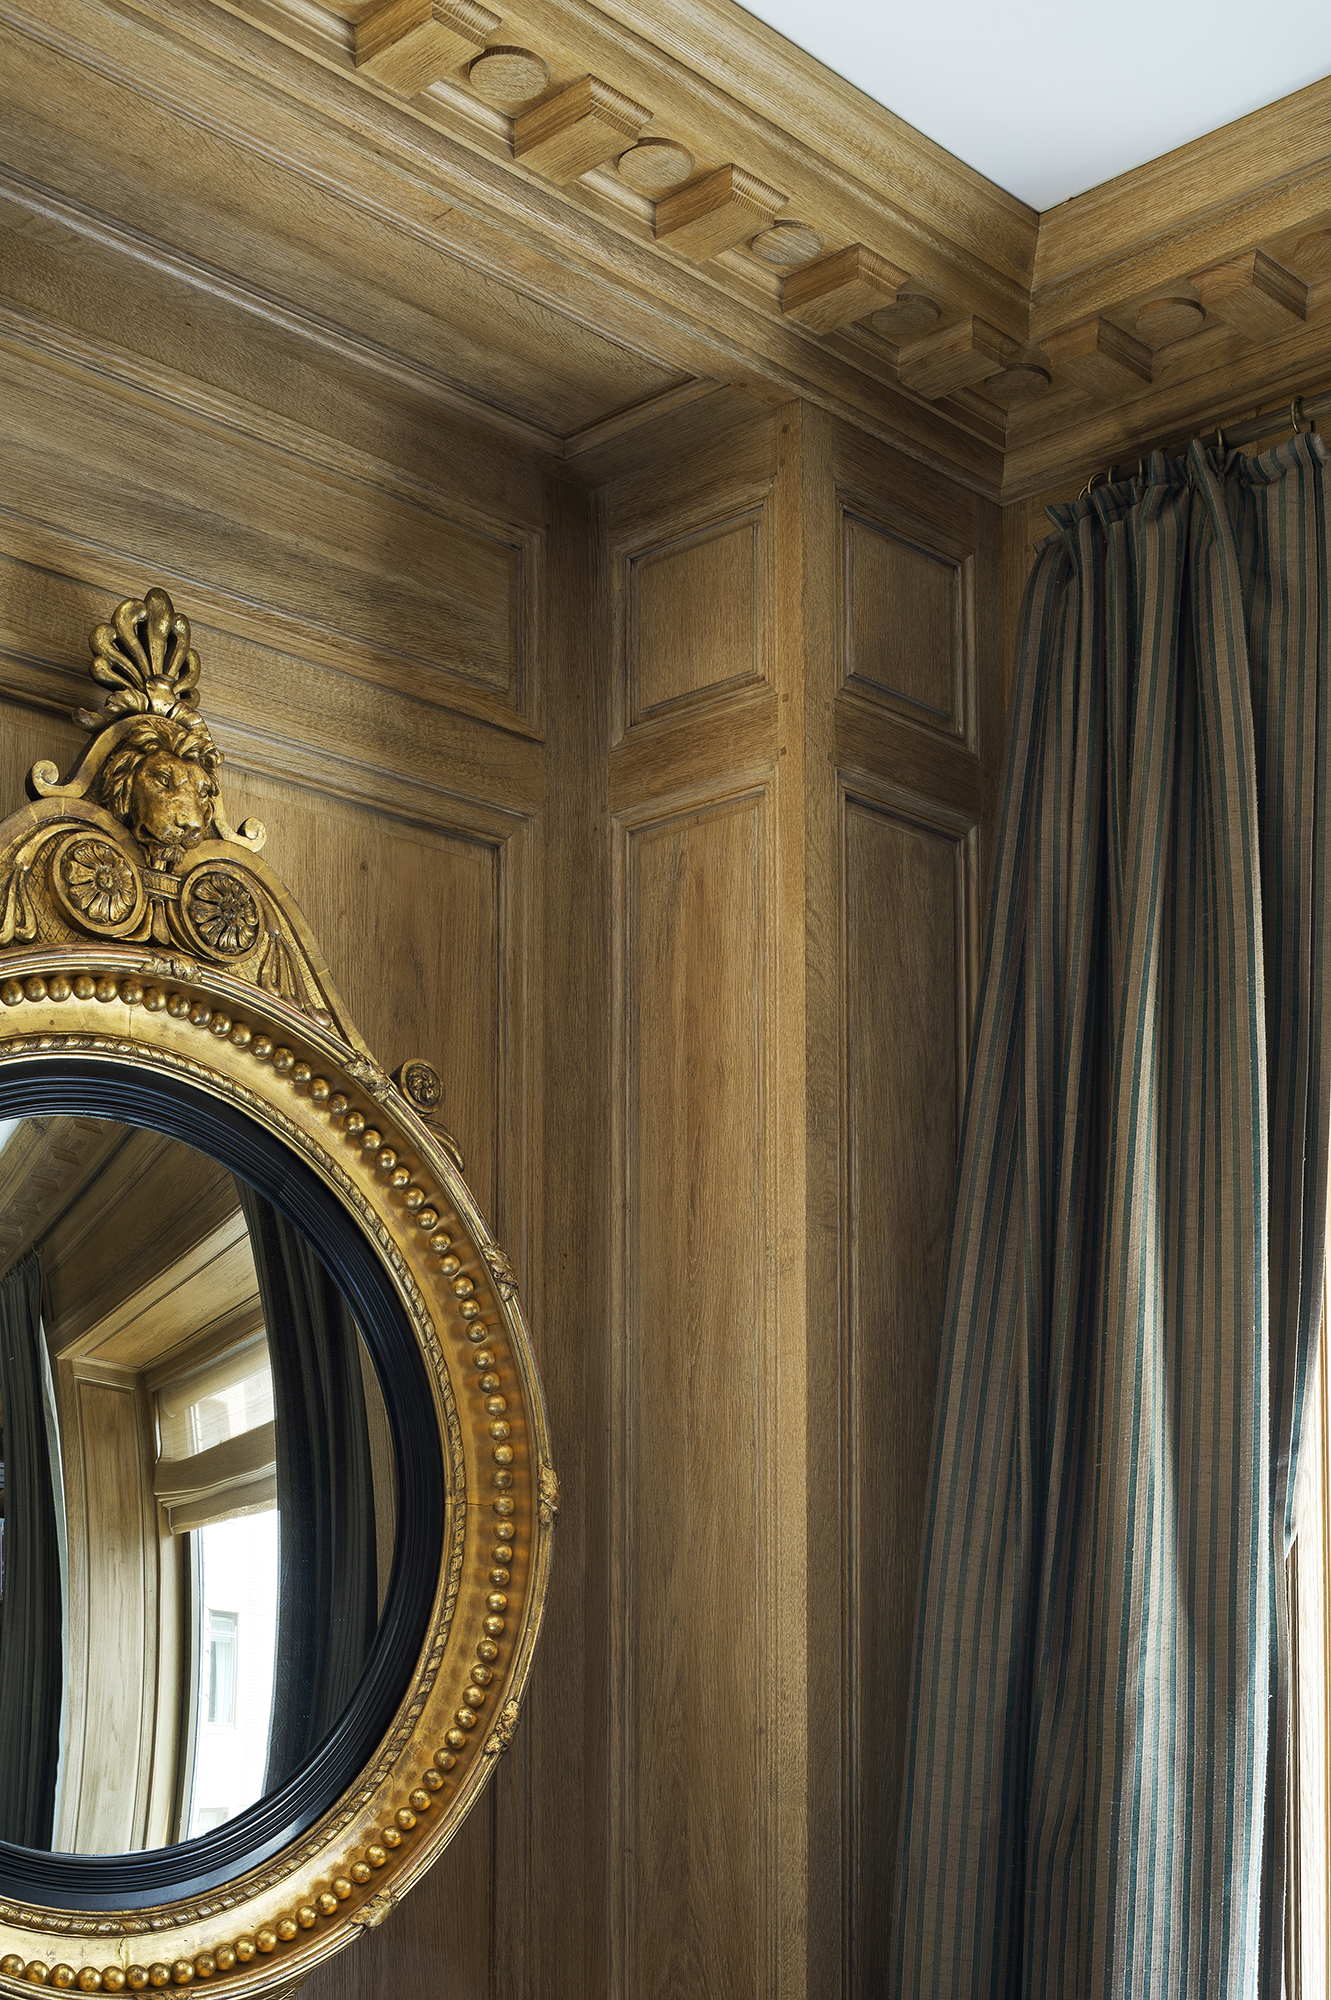 Cornice copied from the one conceived by Christian Dior and his decorator Georges Geffroy for the boutique avenue Montaigne. Louis XVI-style solid oak scheme with natural patina and wave-motif dado frieze.